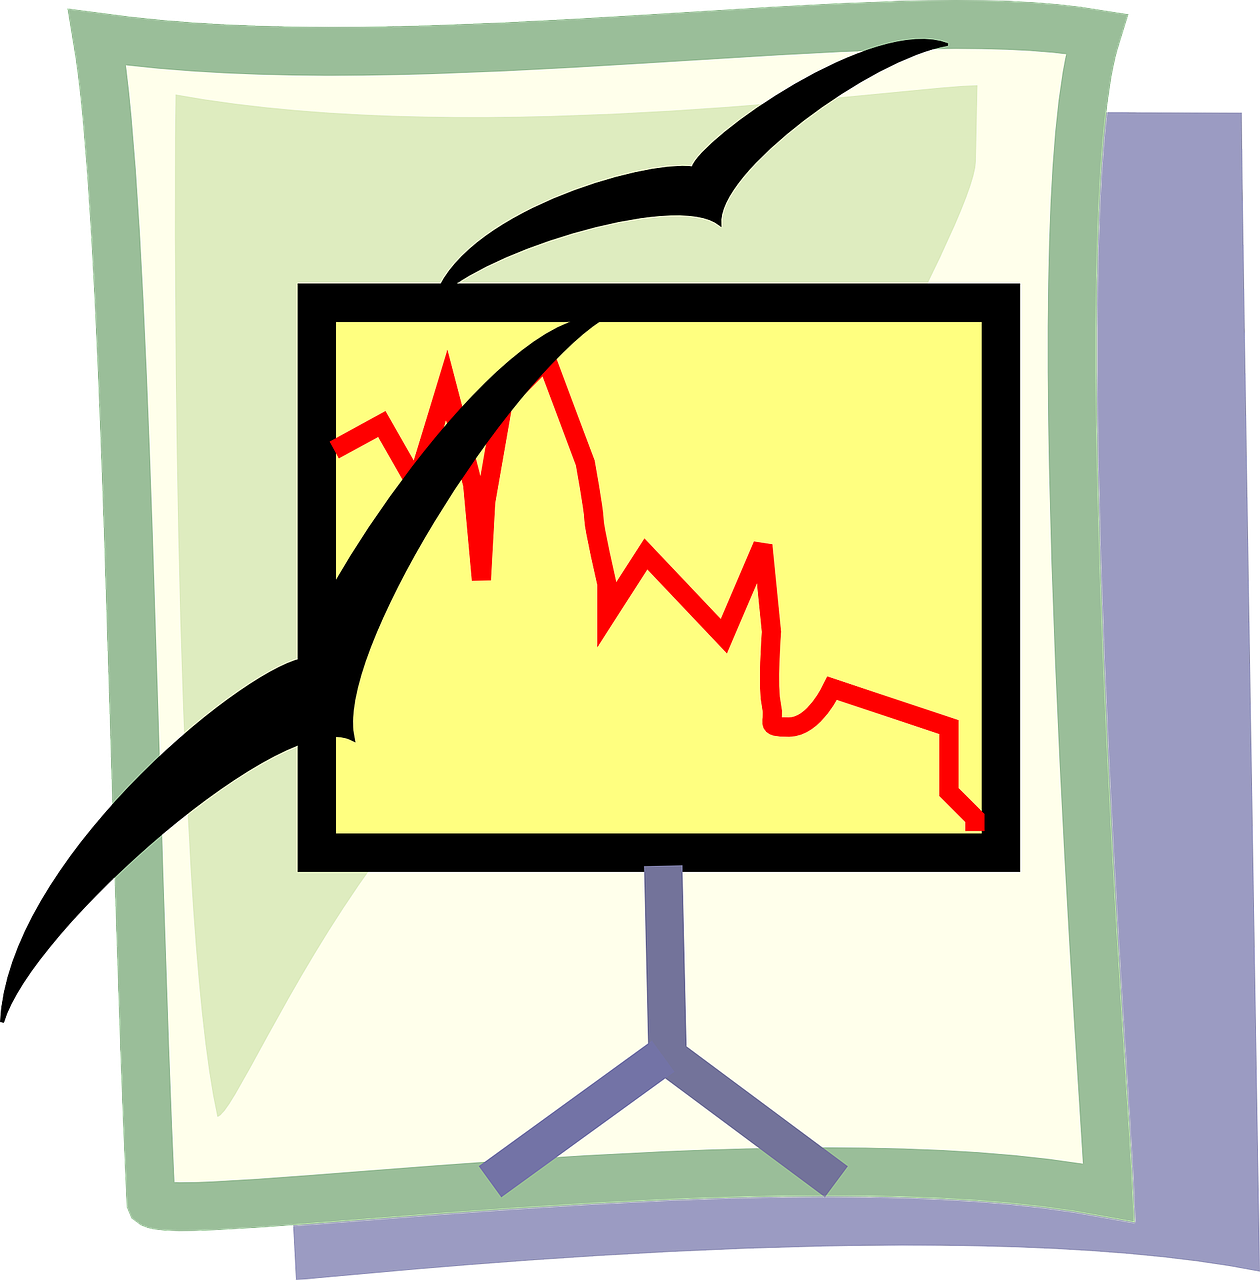 image of a line chart